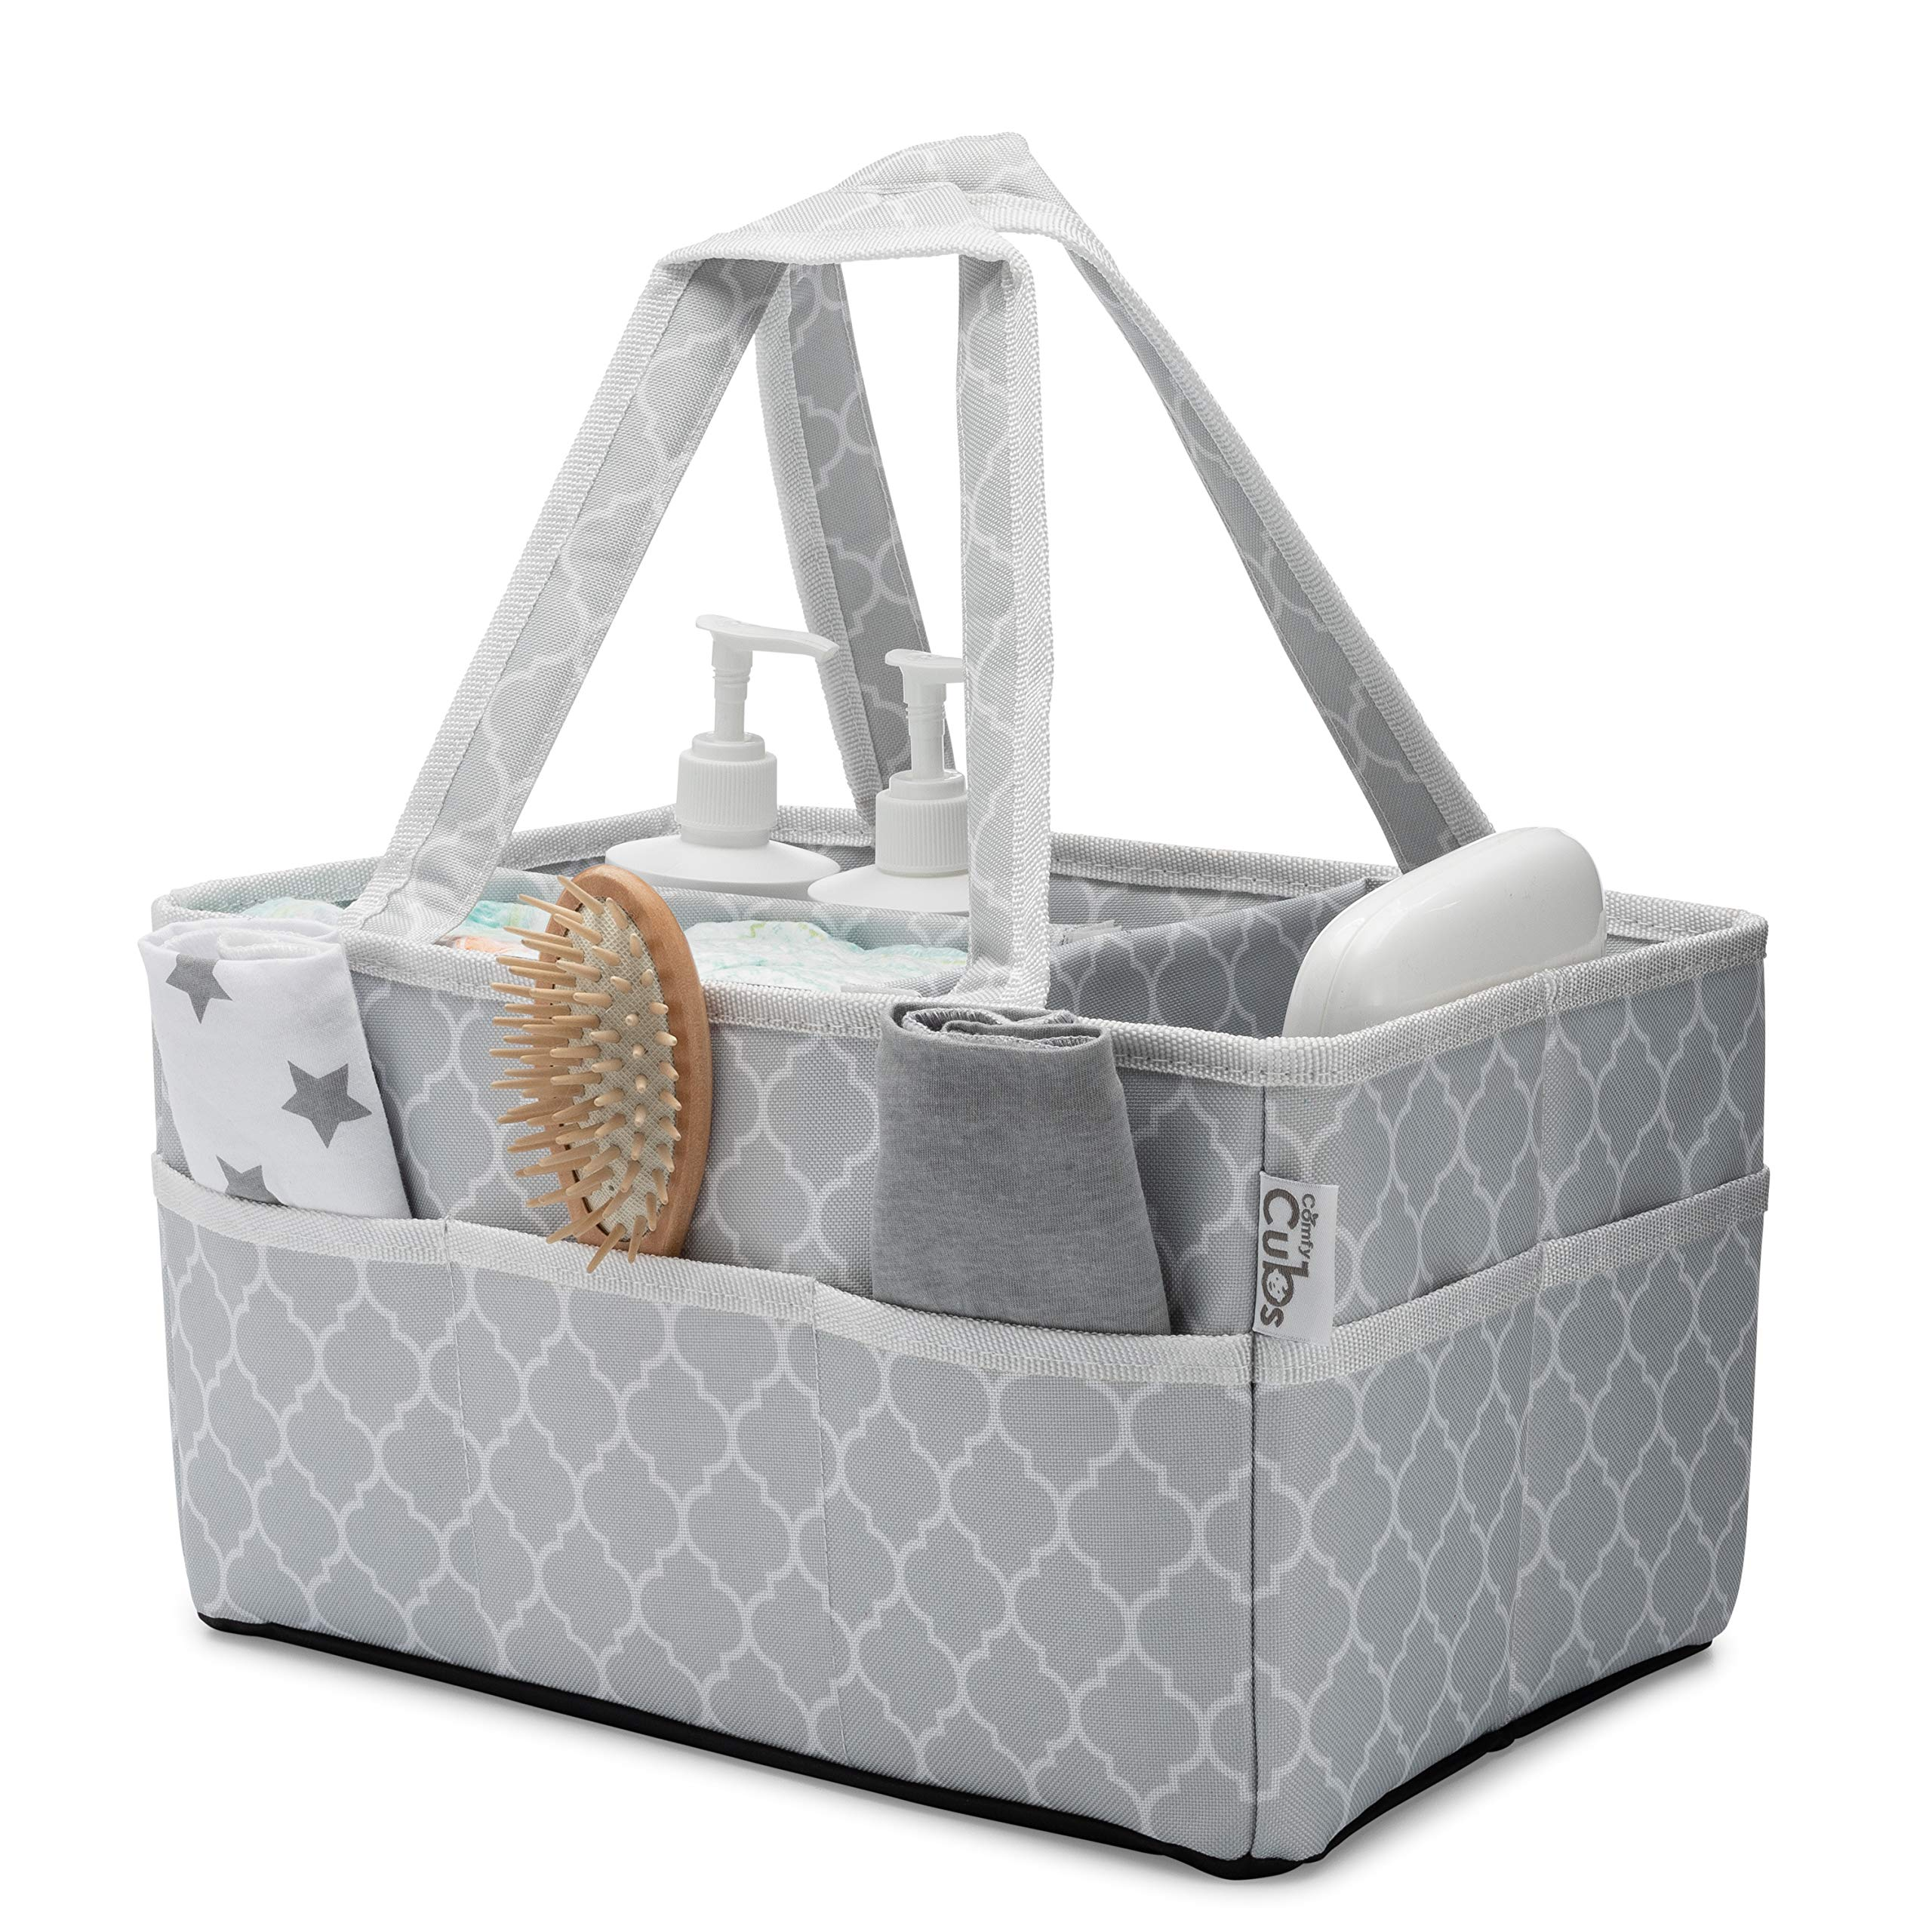 Baby Diaper Caddy Large Organizer Bag Portable Basket for Car Bedroom Travel Storage Changing Table by Comfy Cubs